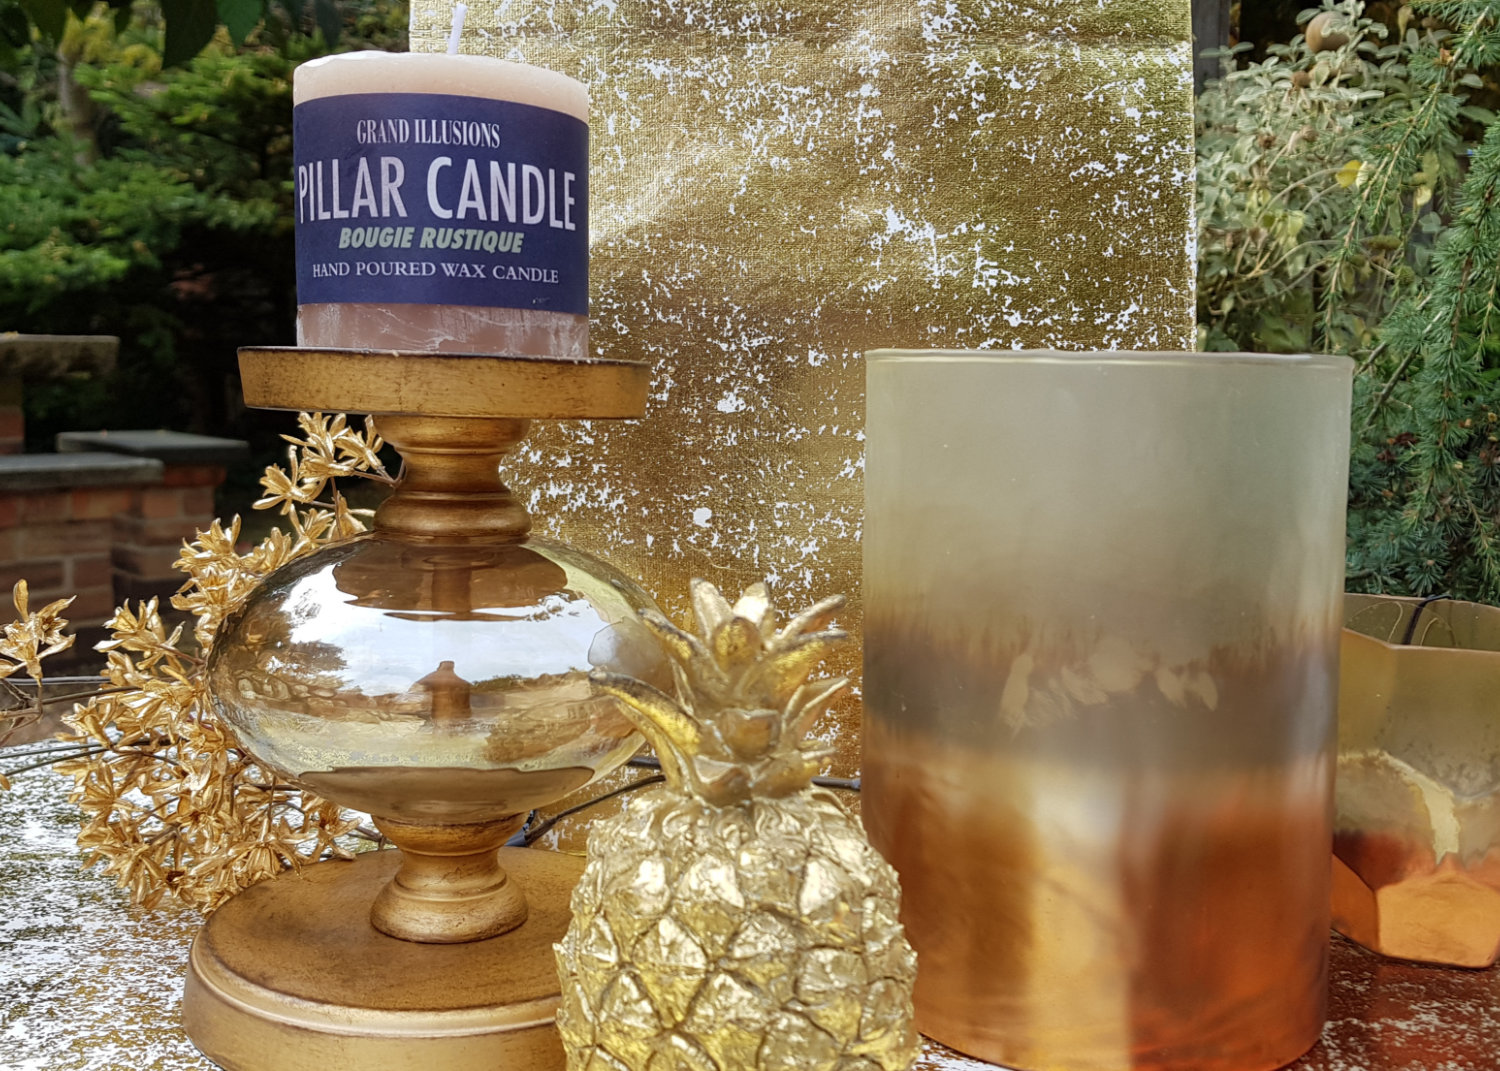 Chunky, gold candlestick, gold coloured decorative pineapple and golden glass tea-light holders.